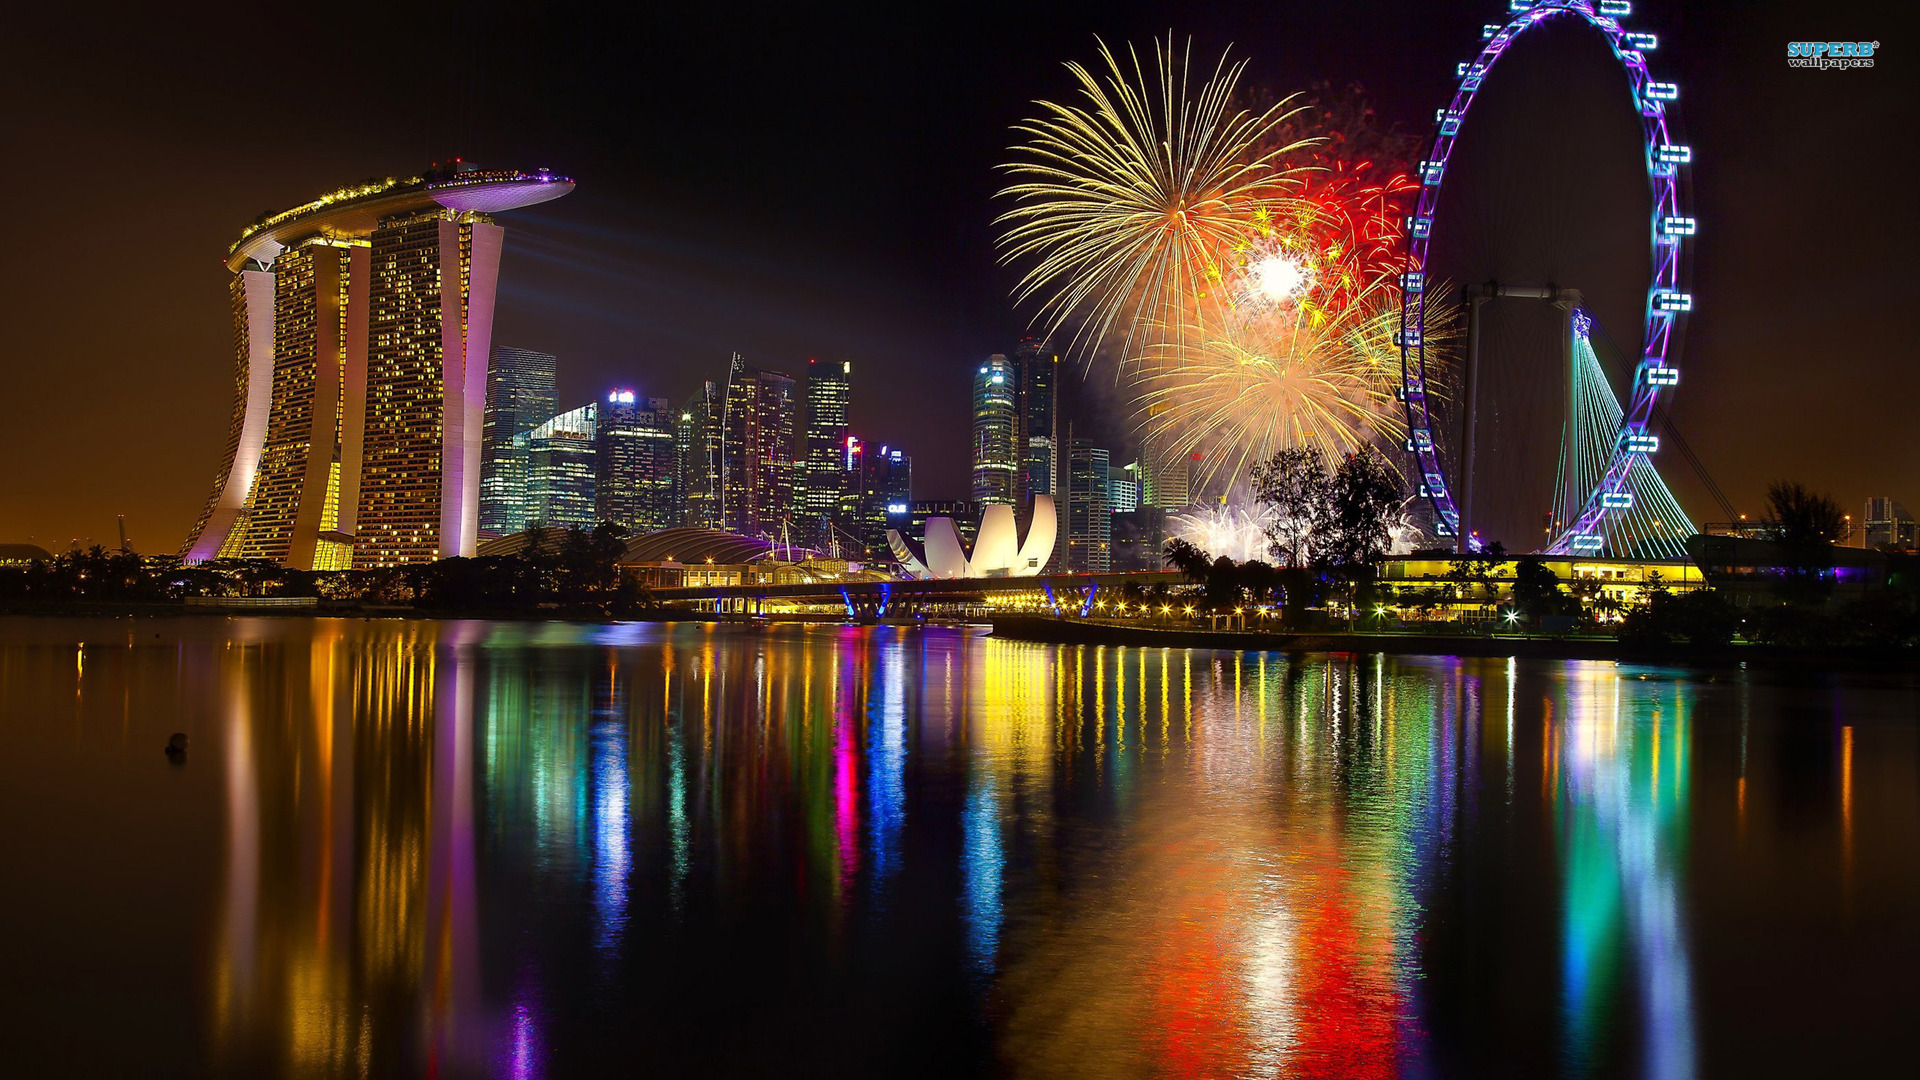 Download now full hd wallpaper singapore firework ocean marina bay ...